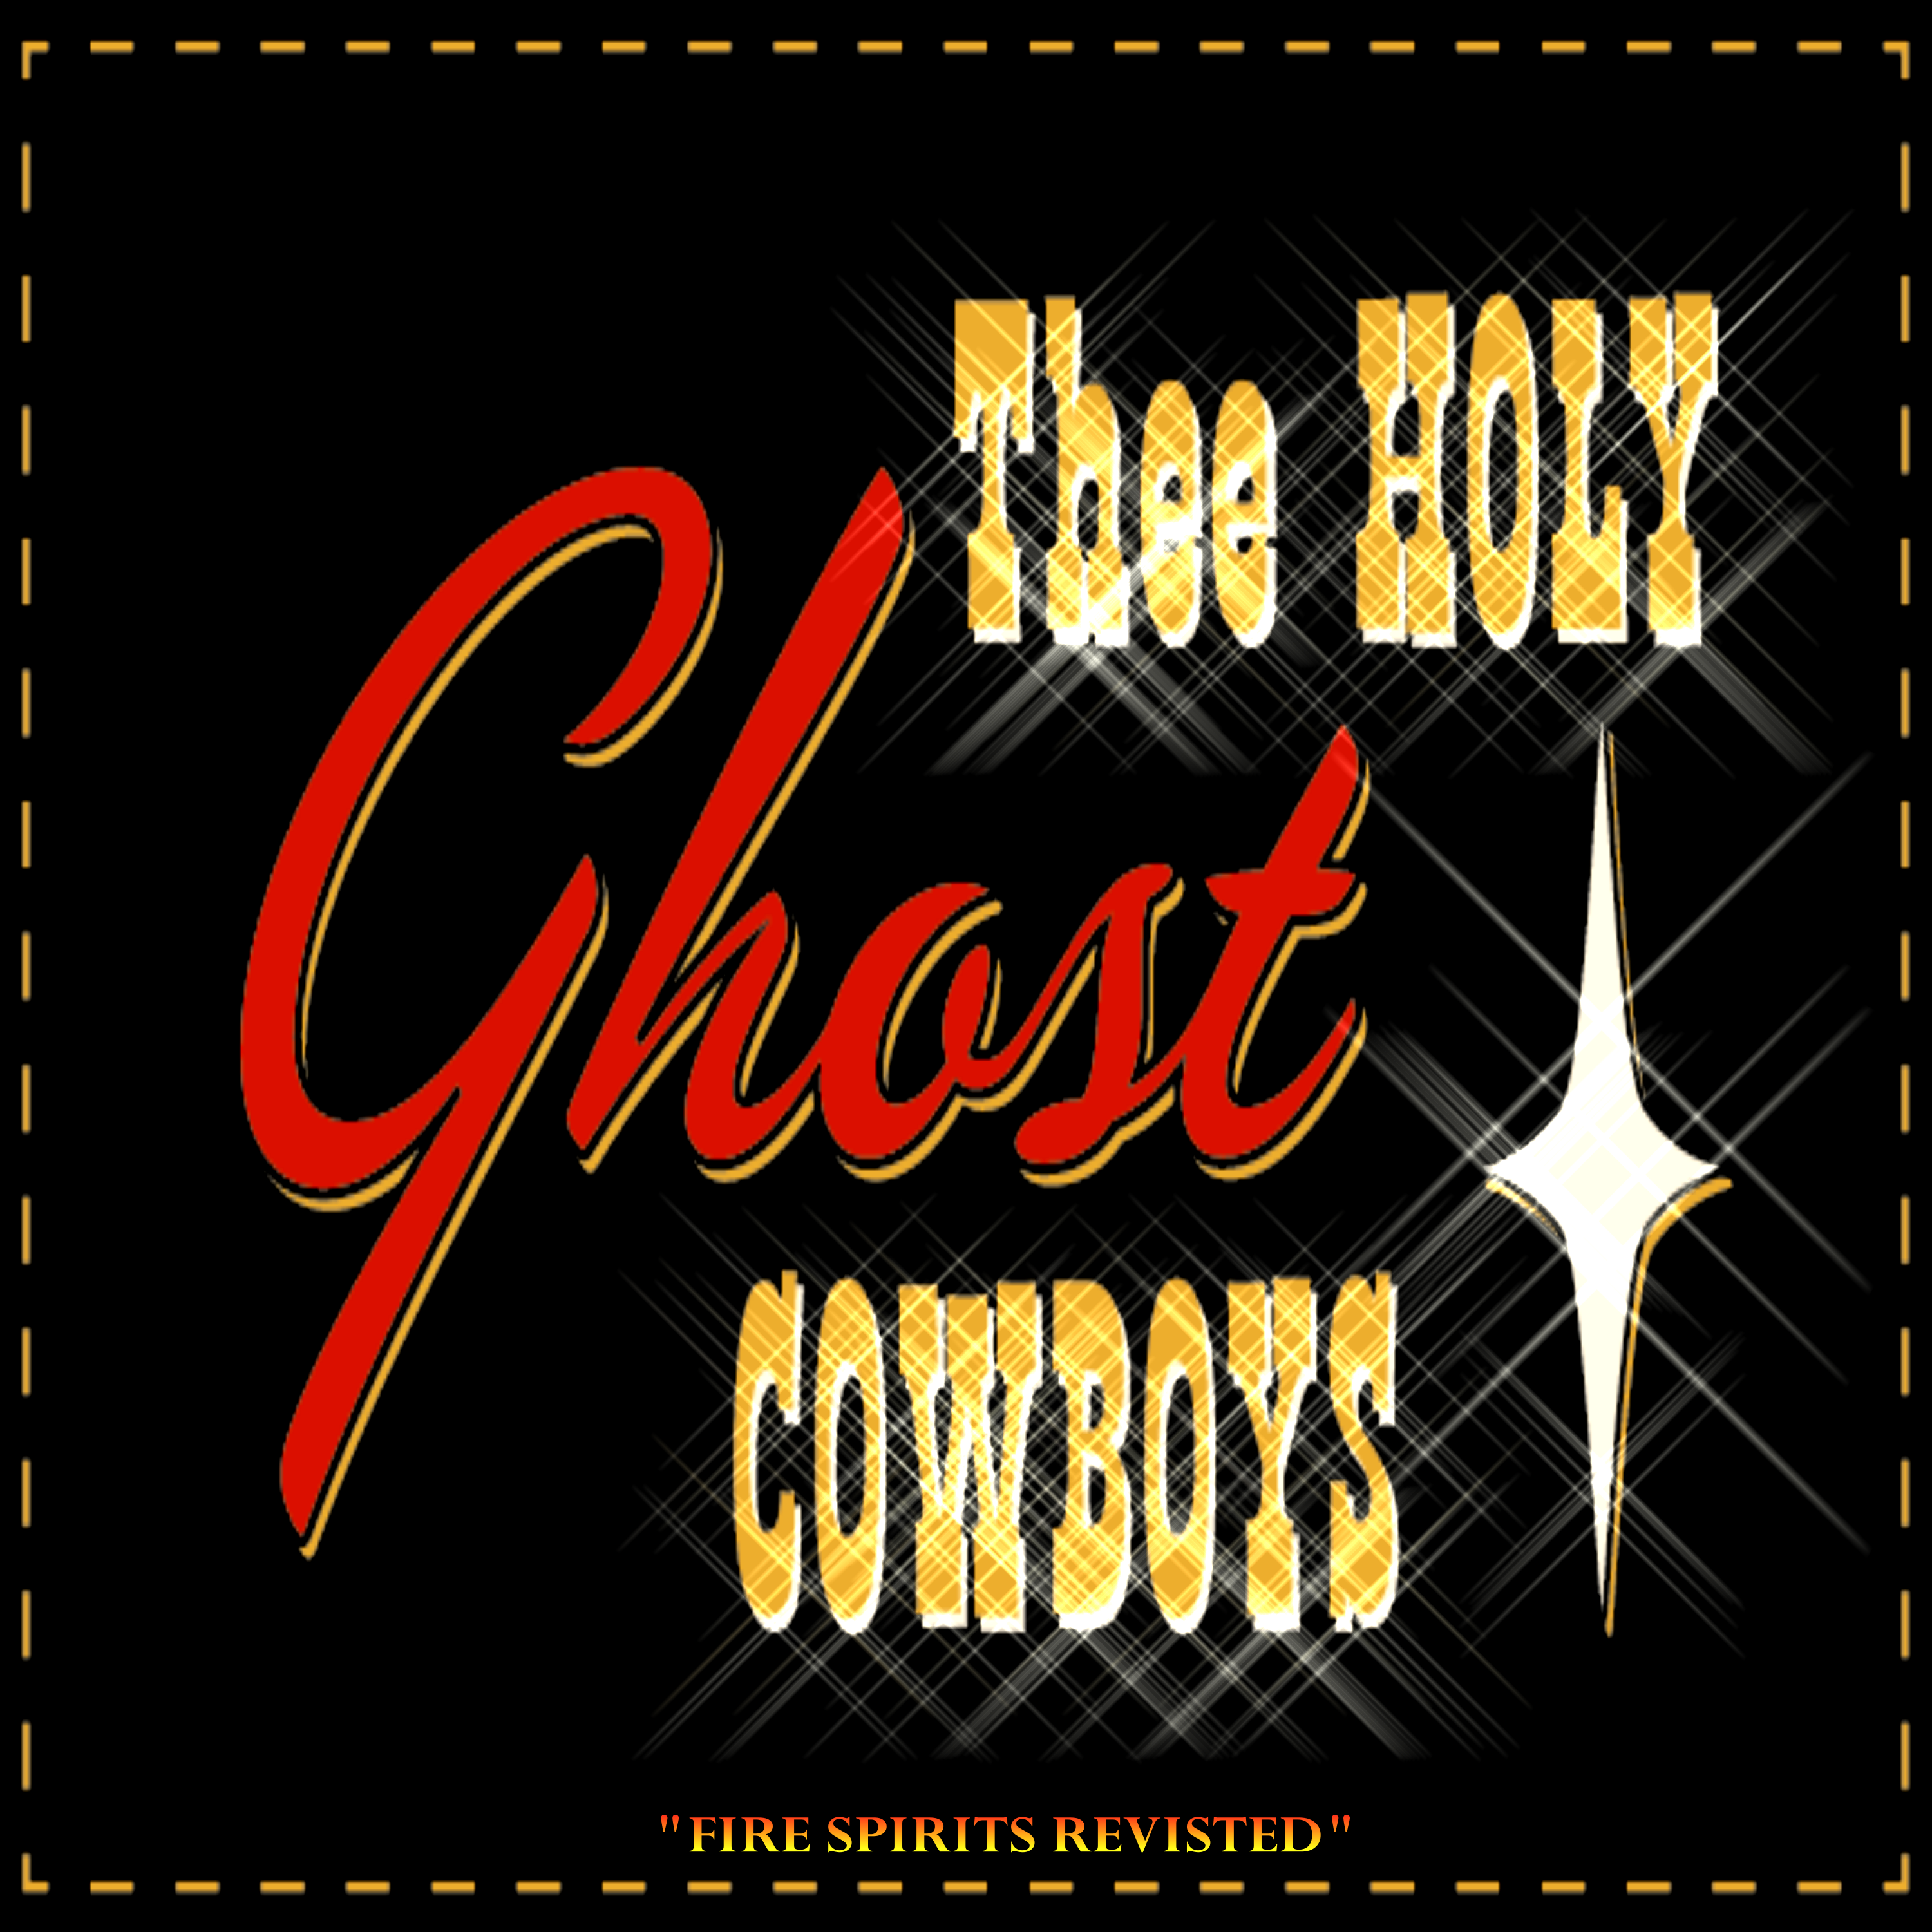 The Holy Ghost Cowboys Cover Front